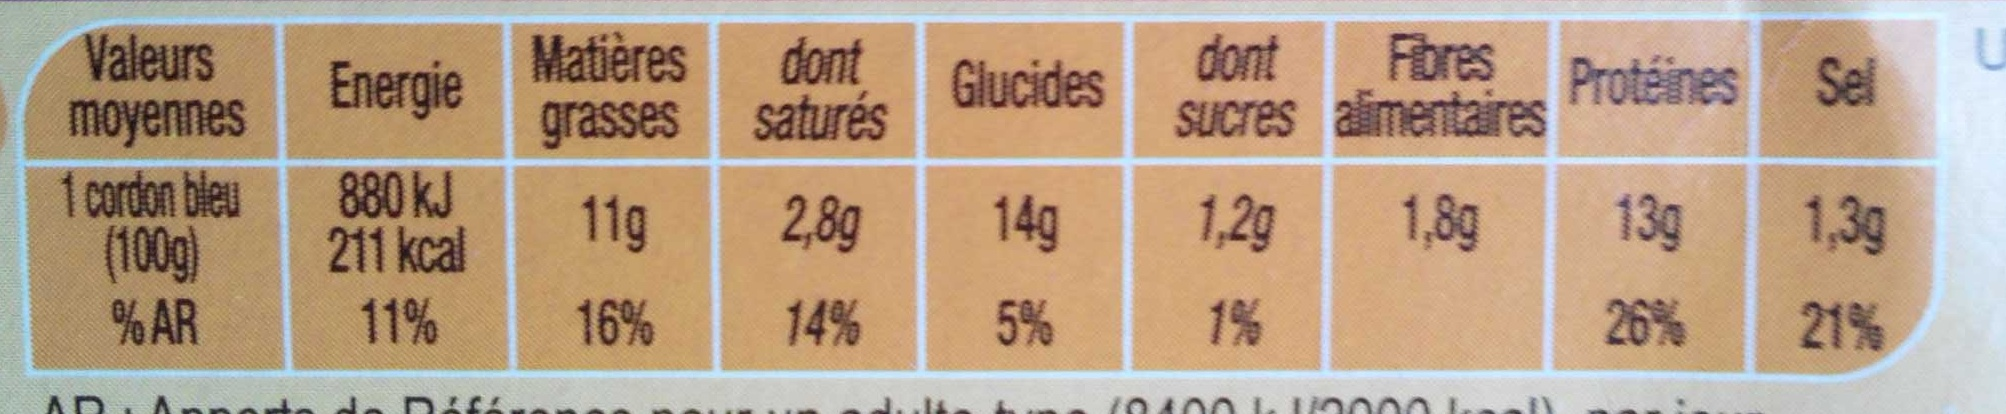 Cordons Bleus de dinde (x 2) - Nutrition facts